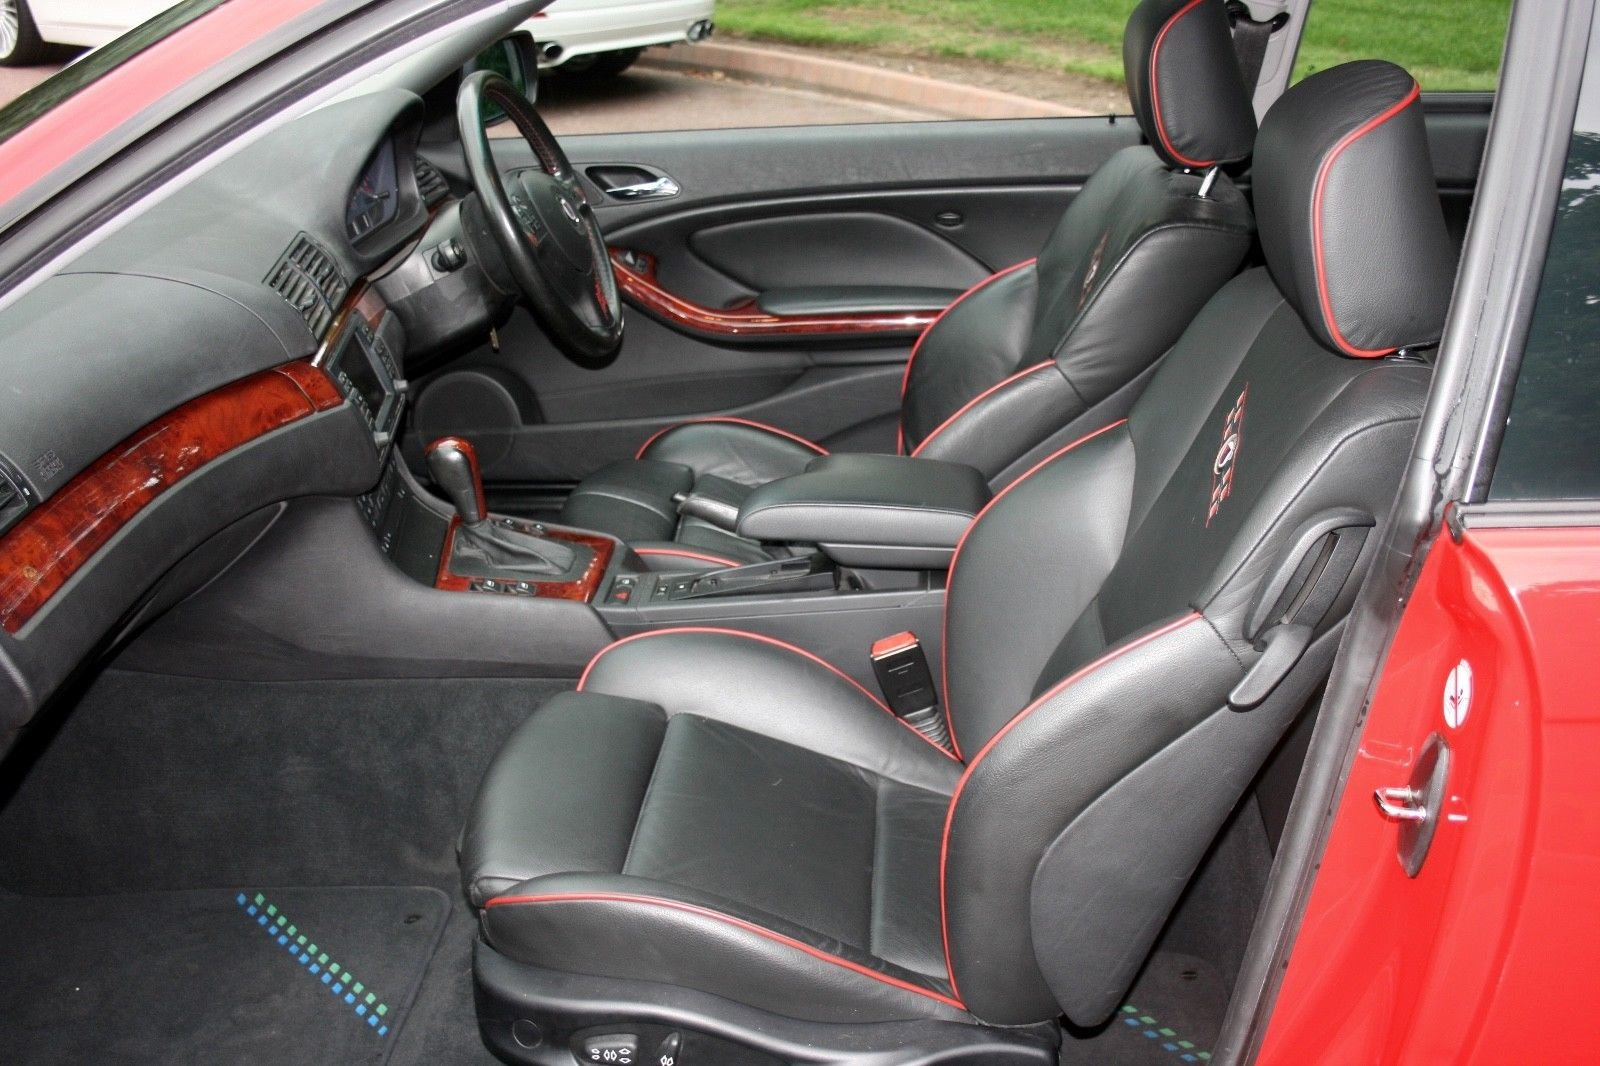 2003 BMW Alpina B3S Coupe Japan Red For Sale (picture 3 of 6)